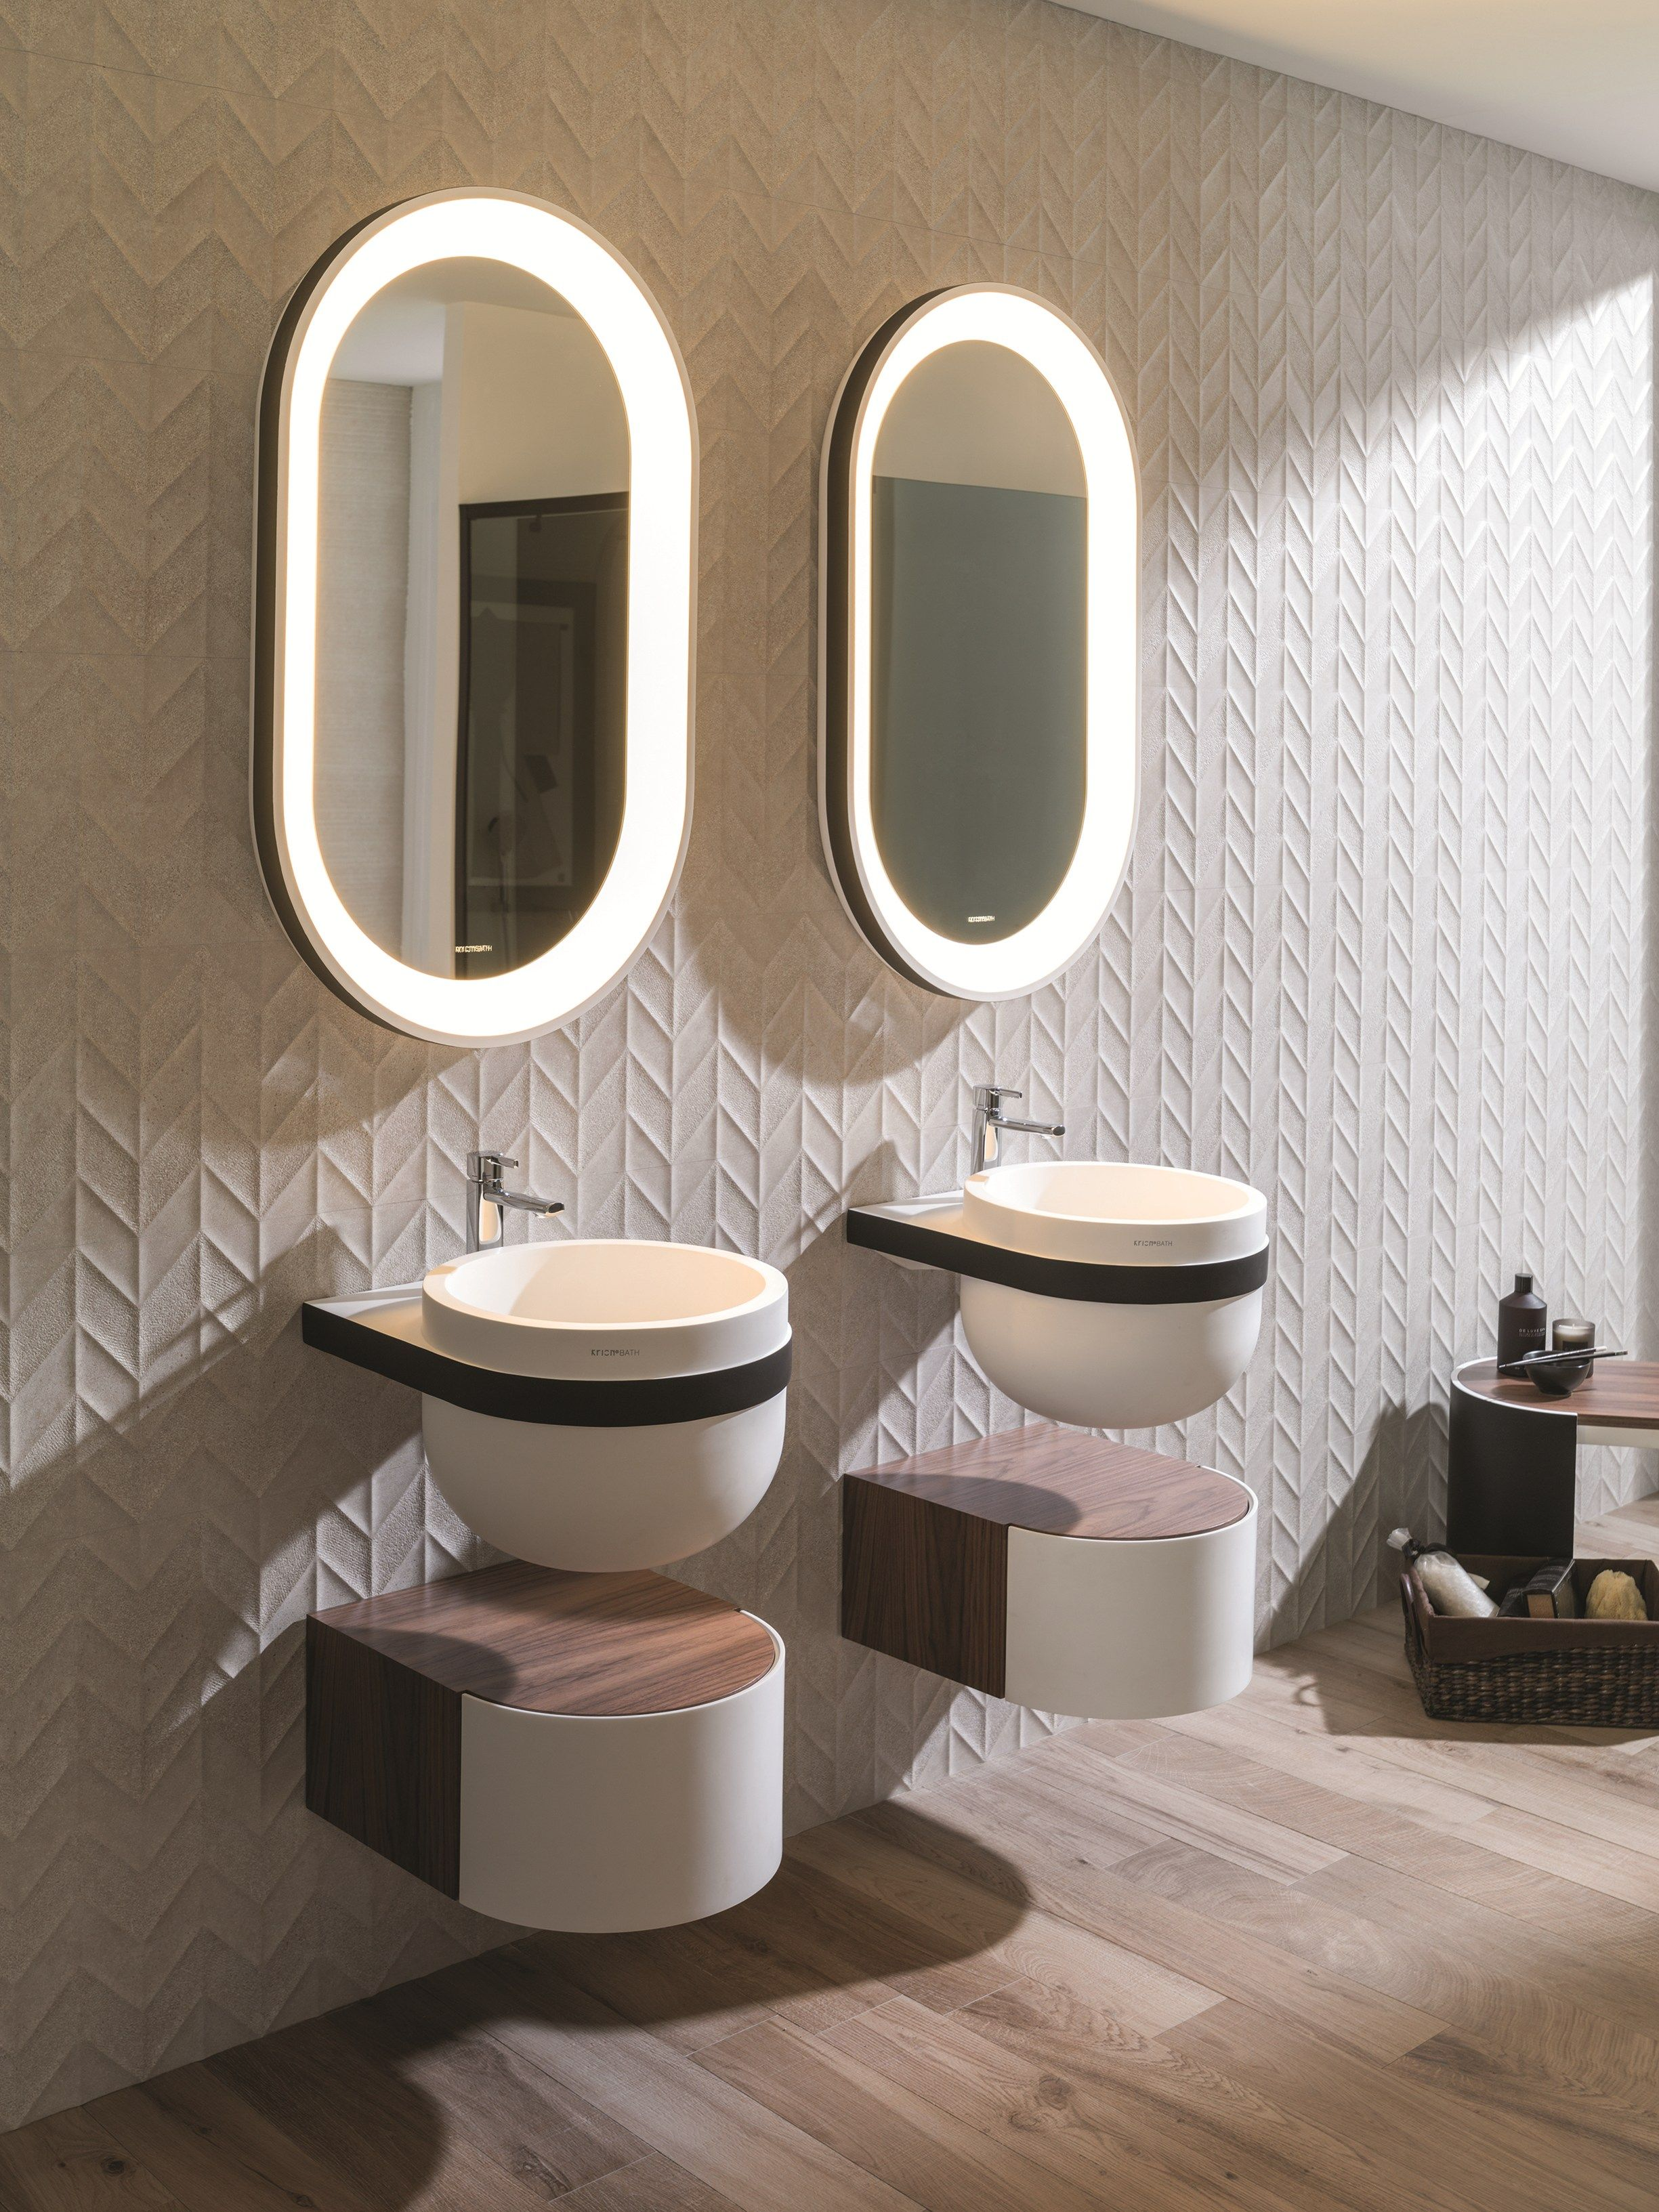 Lavabo Krion Aro Lavabo Sospeso By Systempool Verona Bathroom